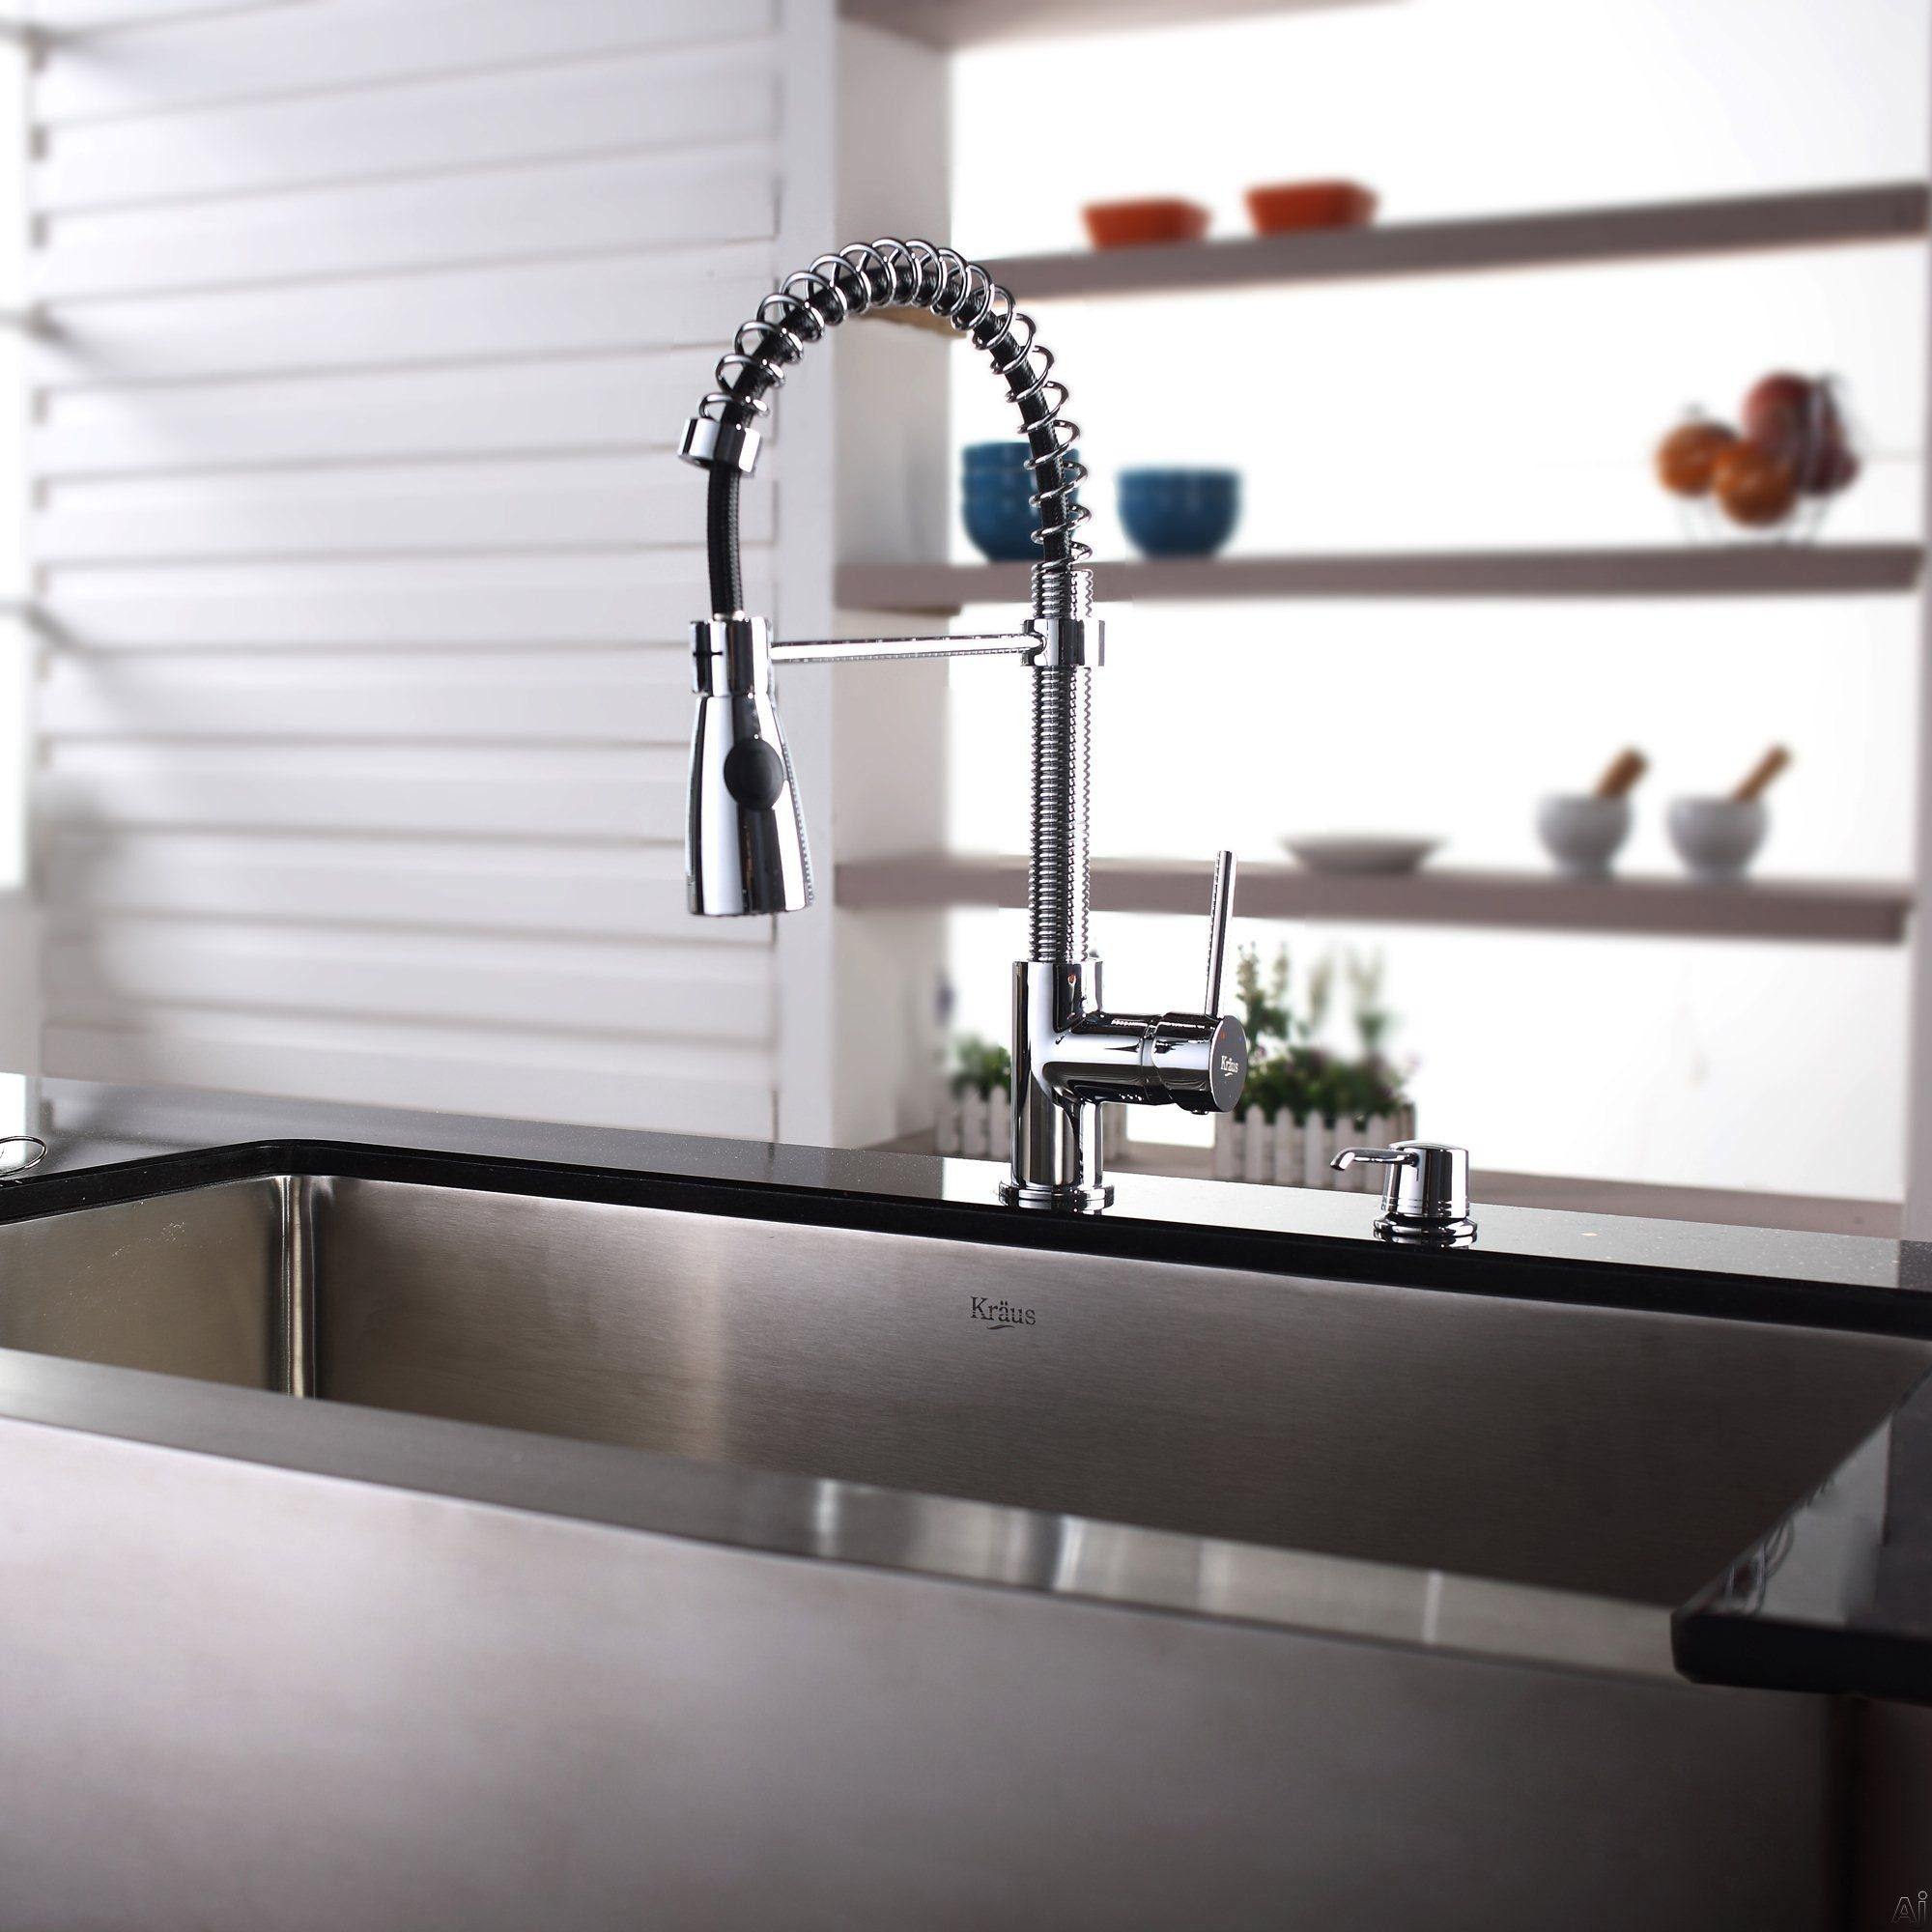 Stainless Country Sink : 36 Inch Farmhouse Single Bowl Stainless Steel Sink ...